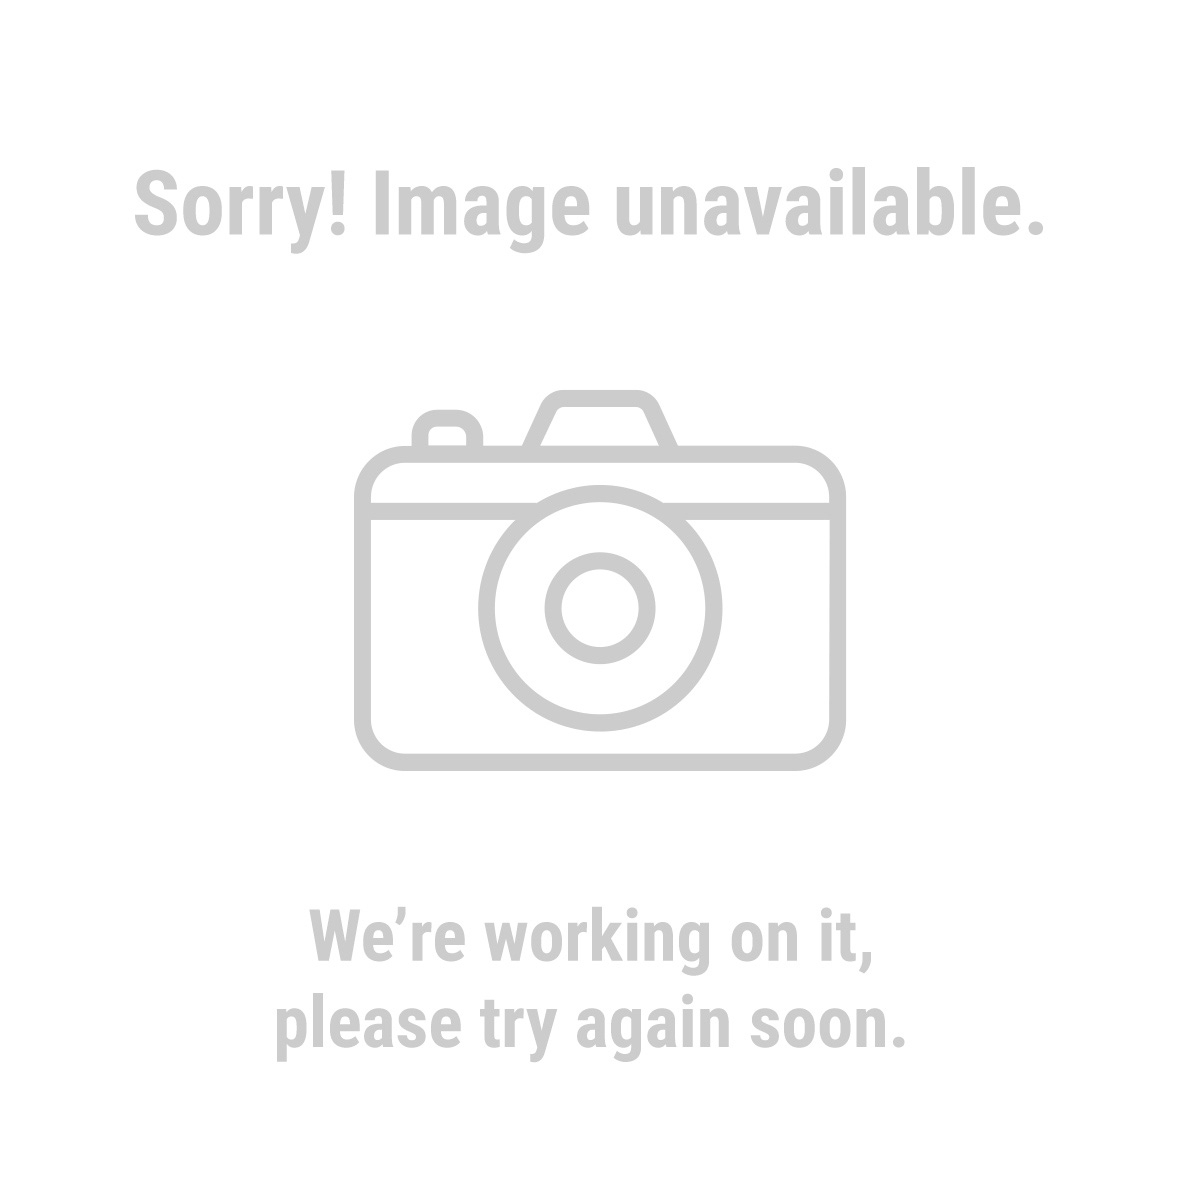 Central Forge® 61553 4 in. Swivel Vise with Anvil